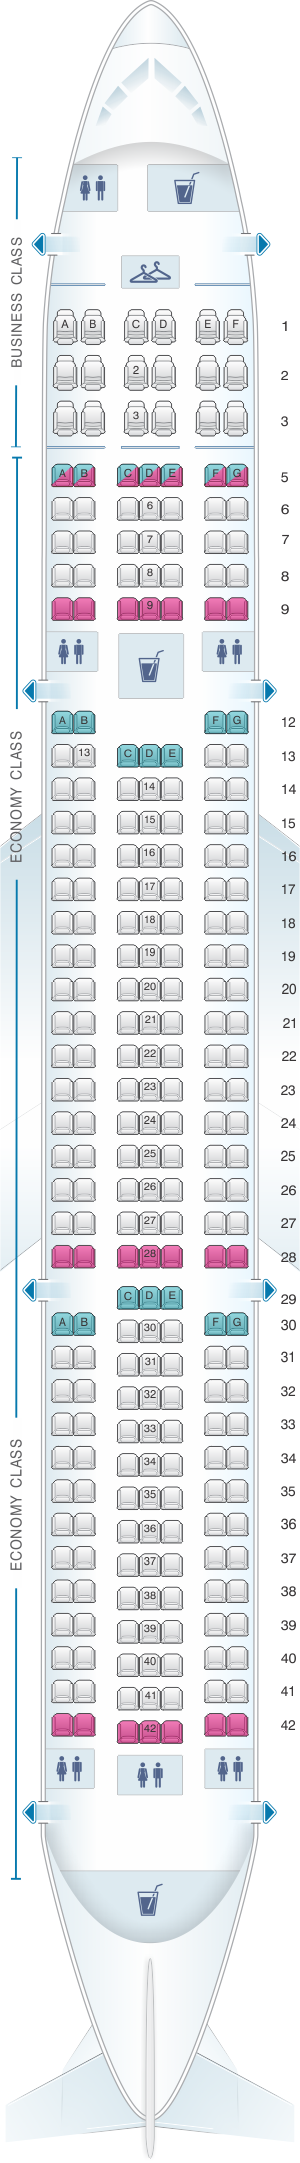 Seat map for MIAT Mongolian Airlines Boeing B767 300